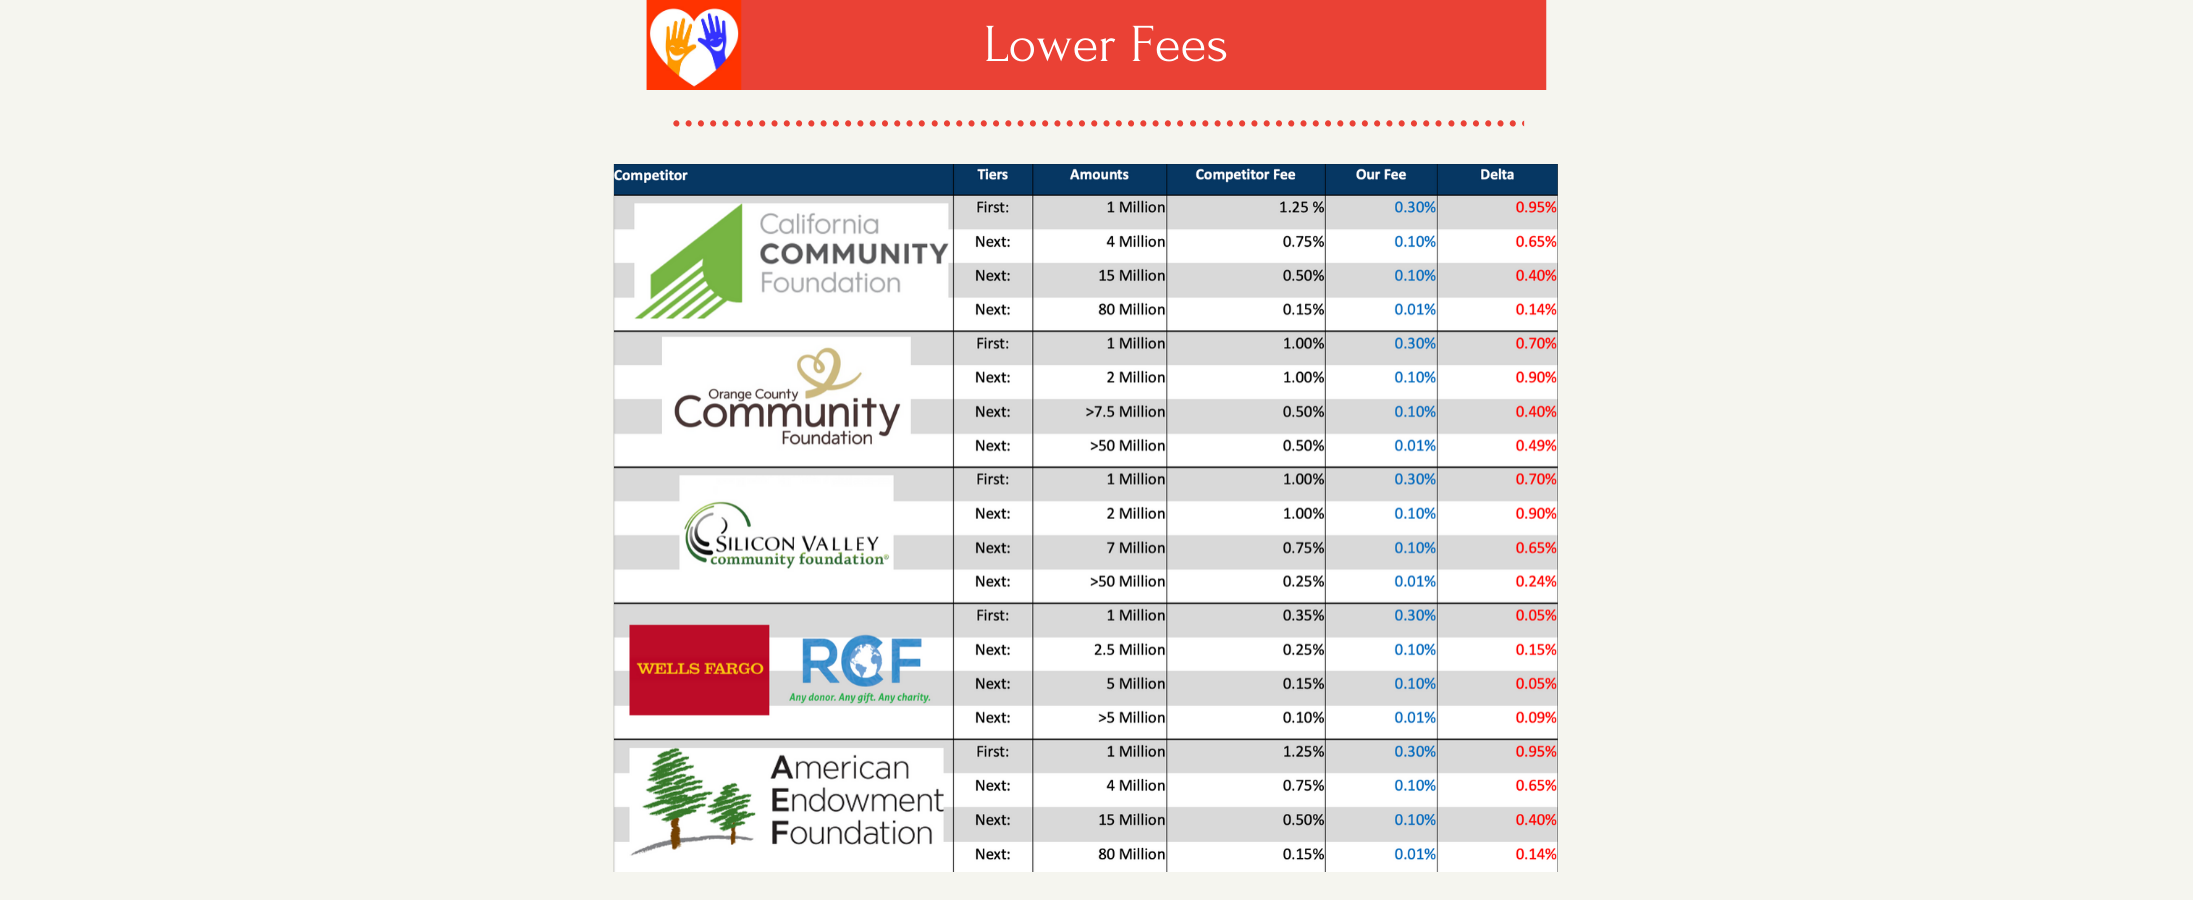 Copy of Copy of Lower Fees